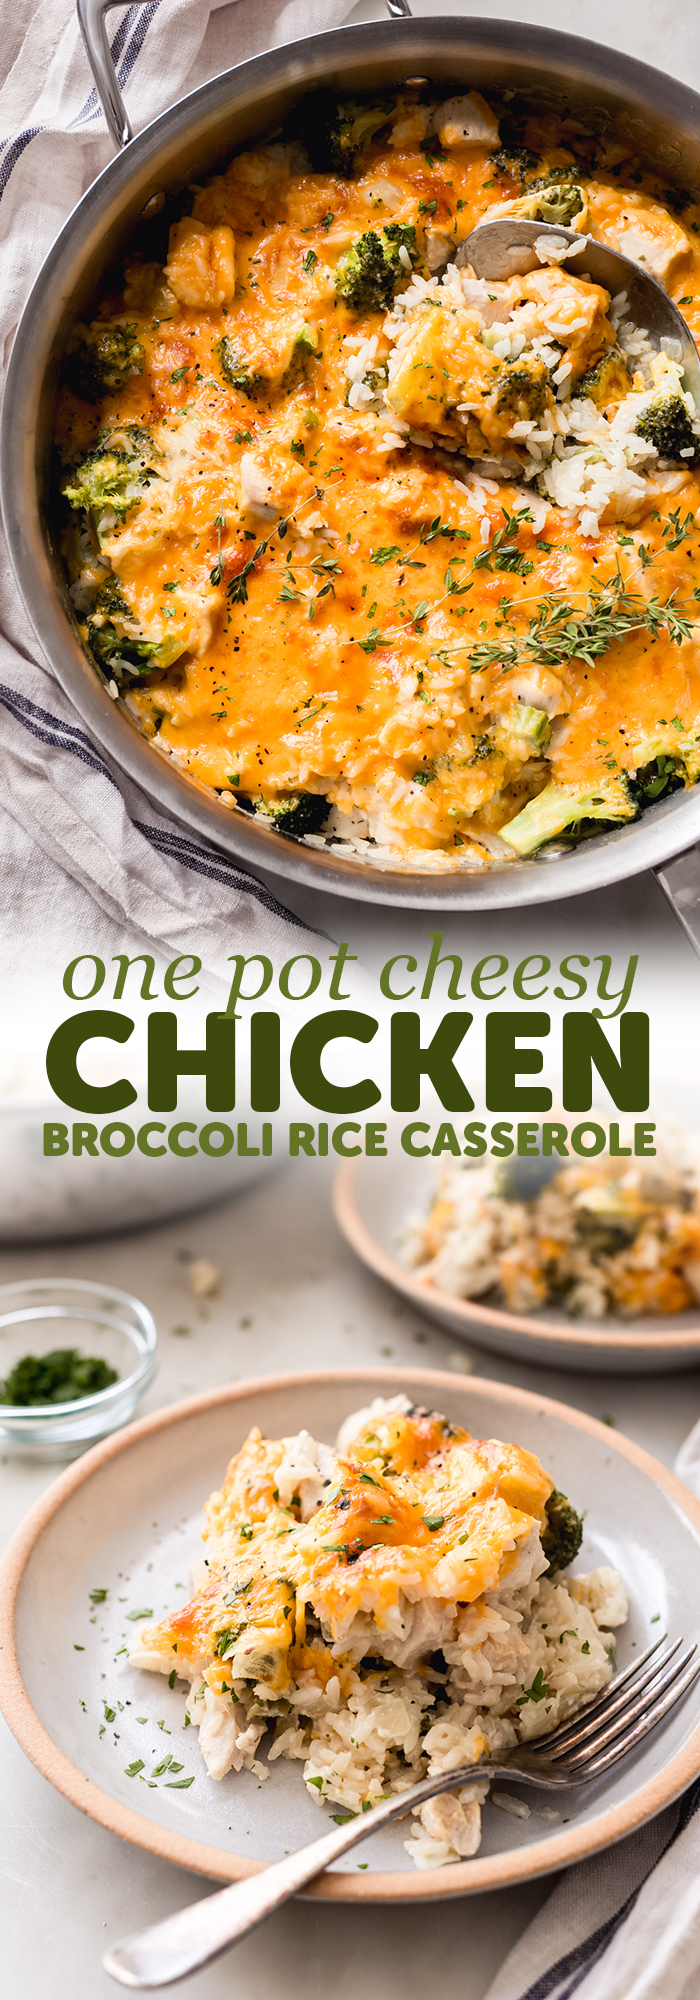 One Pot Cheesy Chicken Broccoli Rice Casserole - a quick and easy one pot weeknight dinner recipe! This is made completely from scratch and is so flavorful! #casserole #onepotrecipes #onepotrecipe #chickencasserole #broccoliricecasserole #casserole | Littlespicejar.com